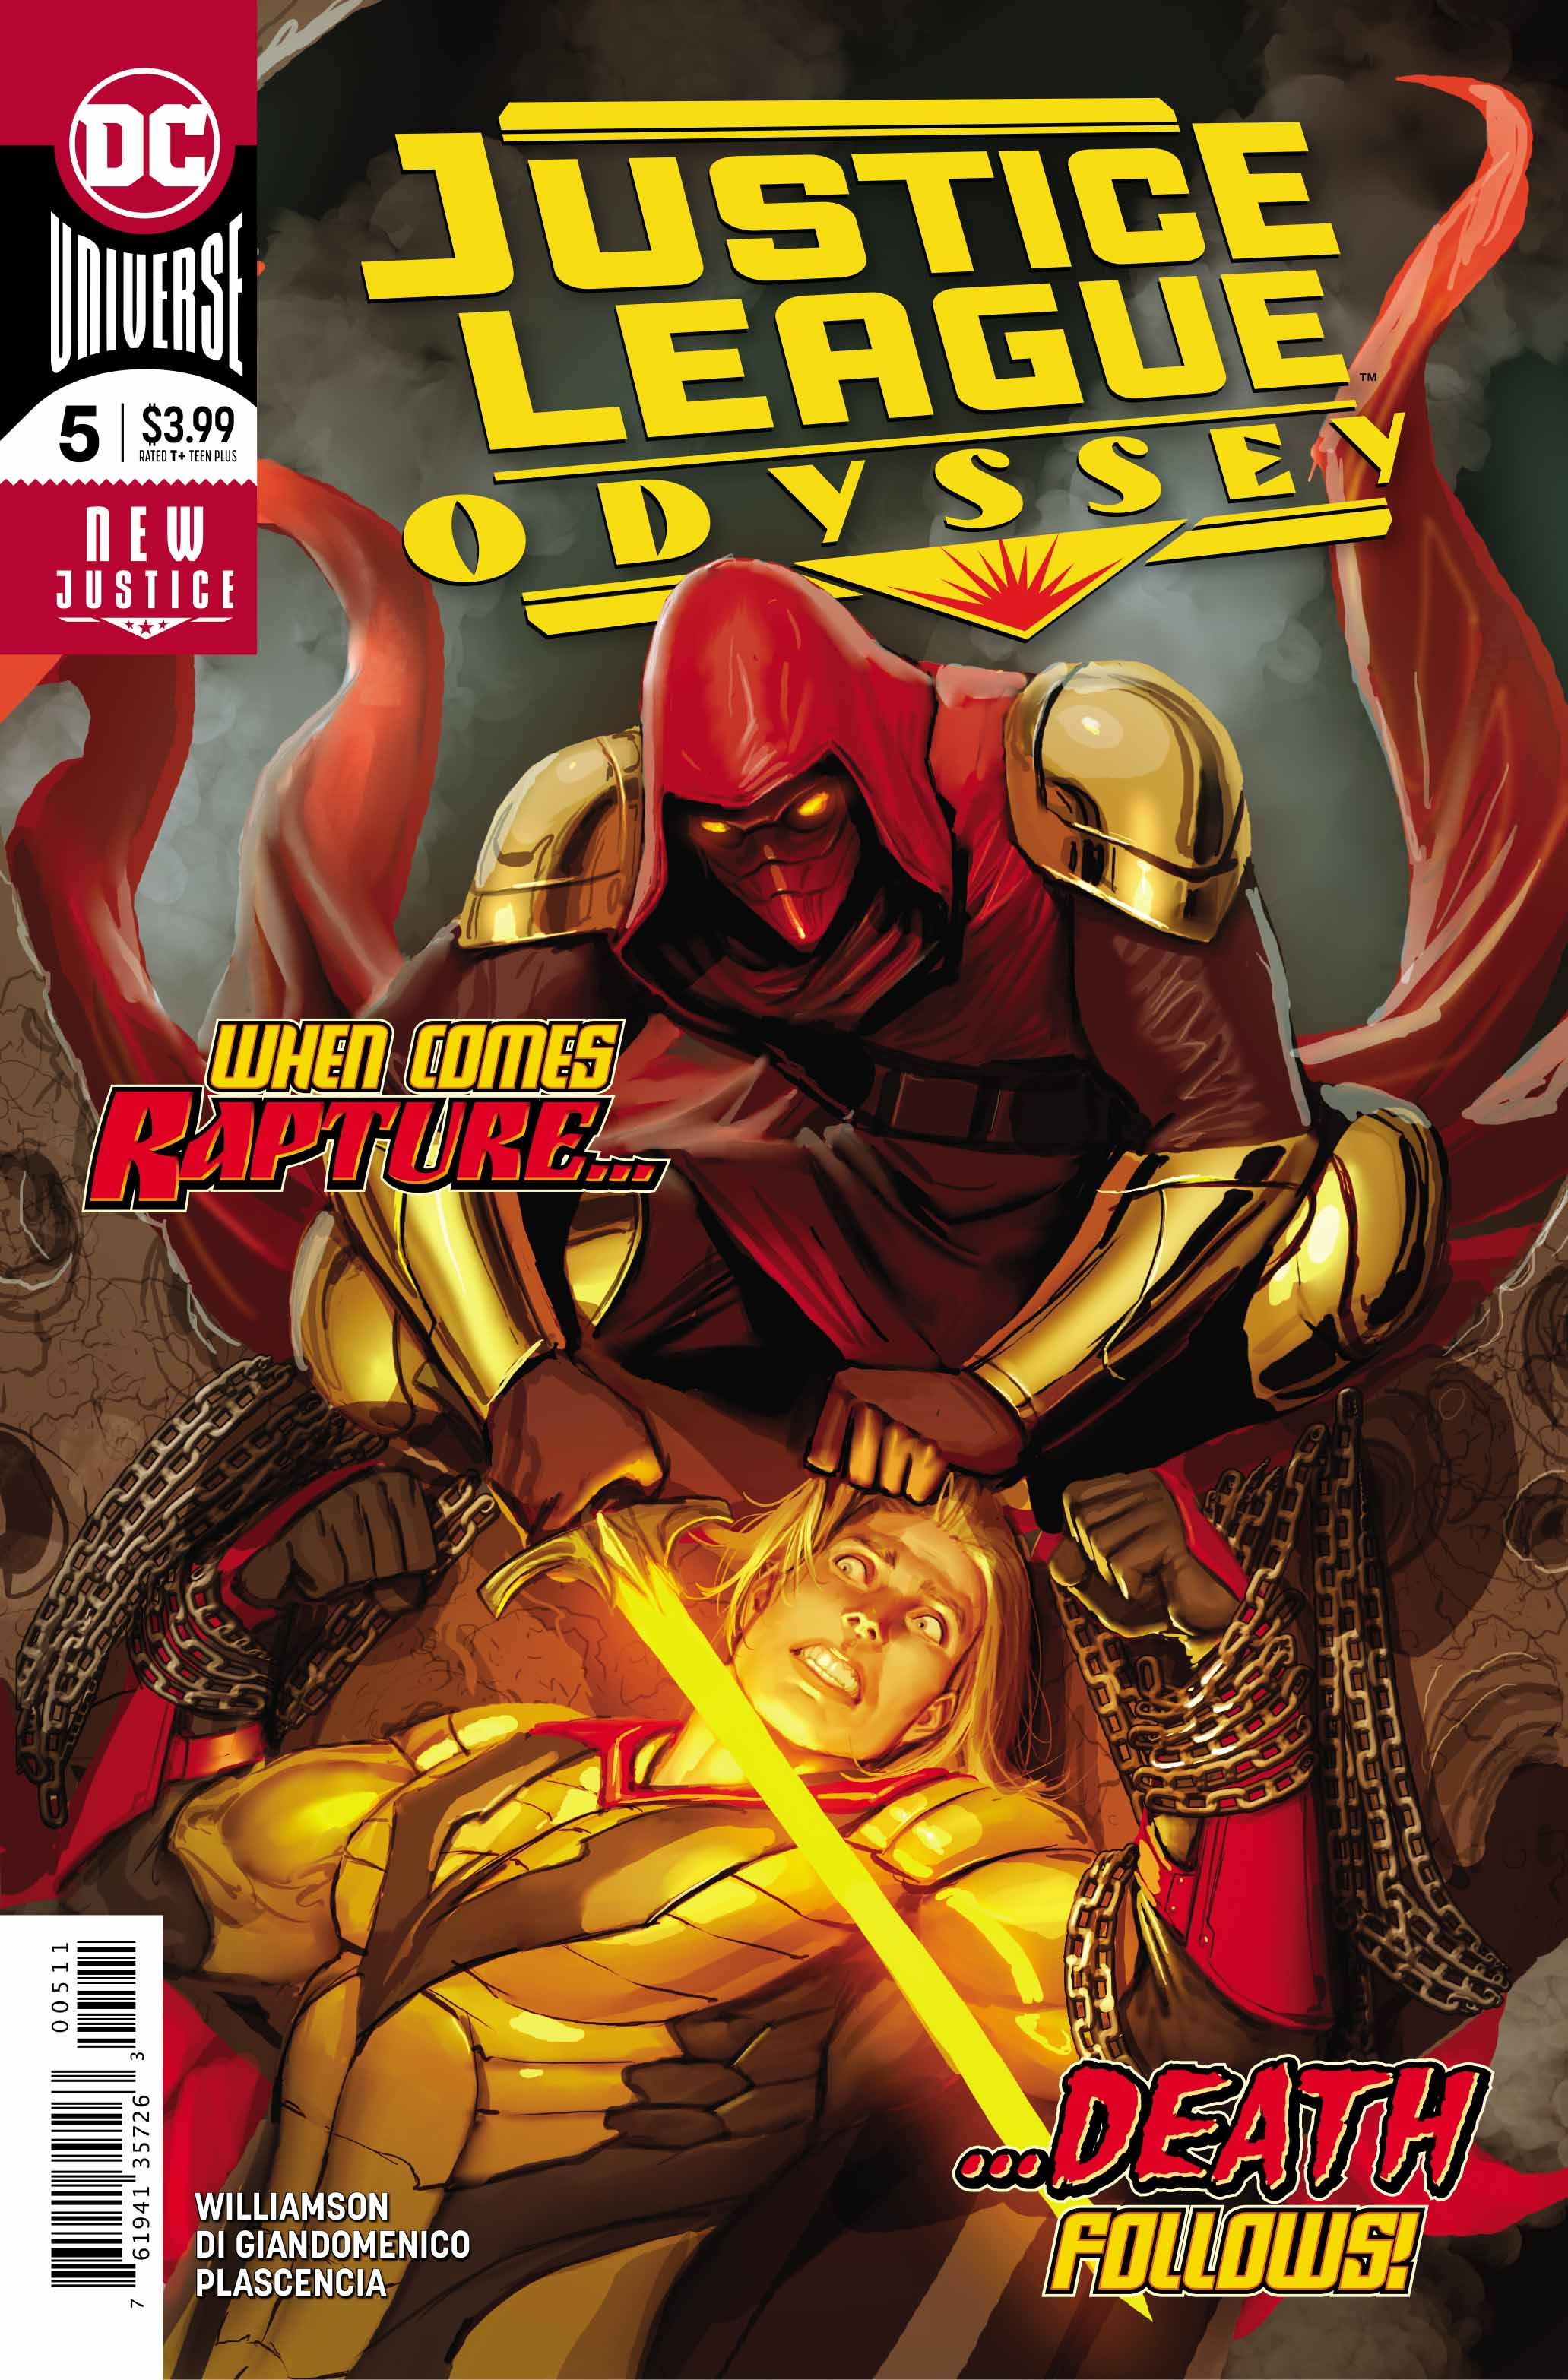 Justice League Odyssey #5 Review